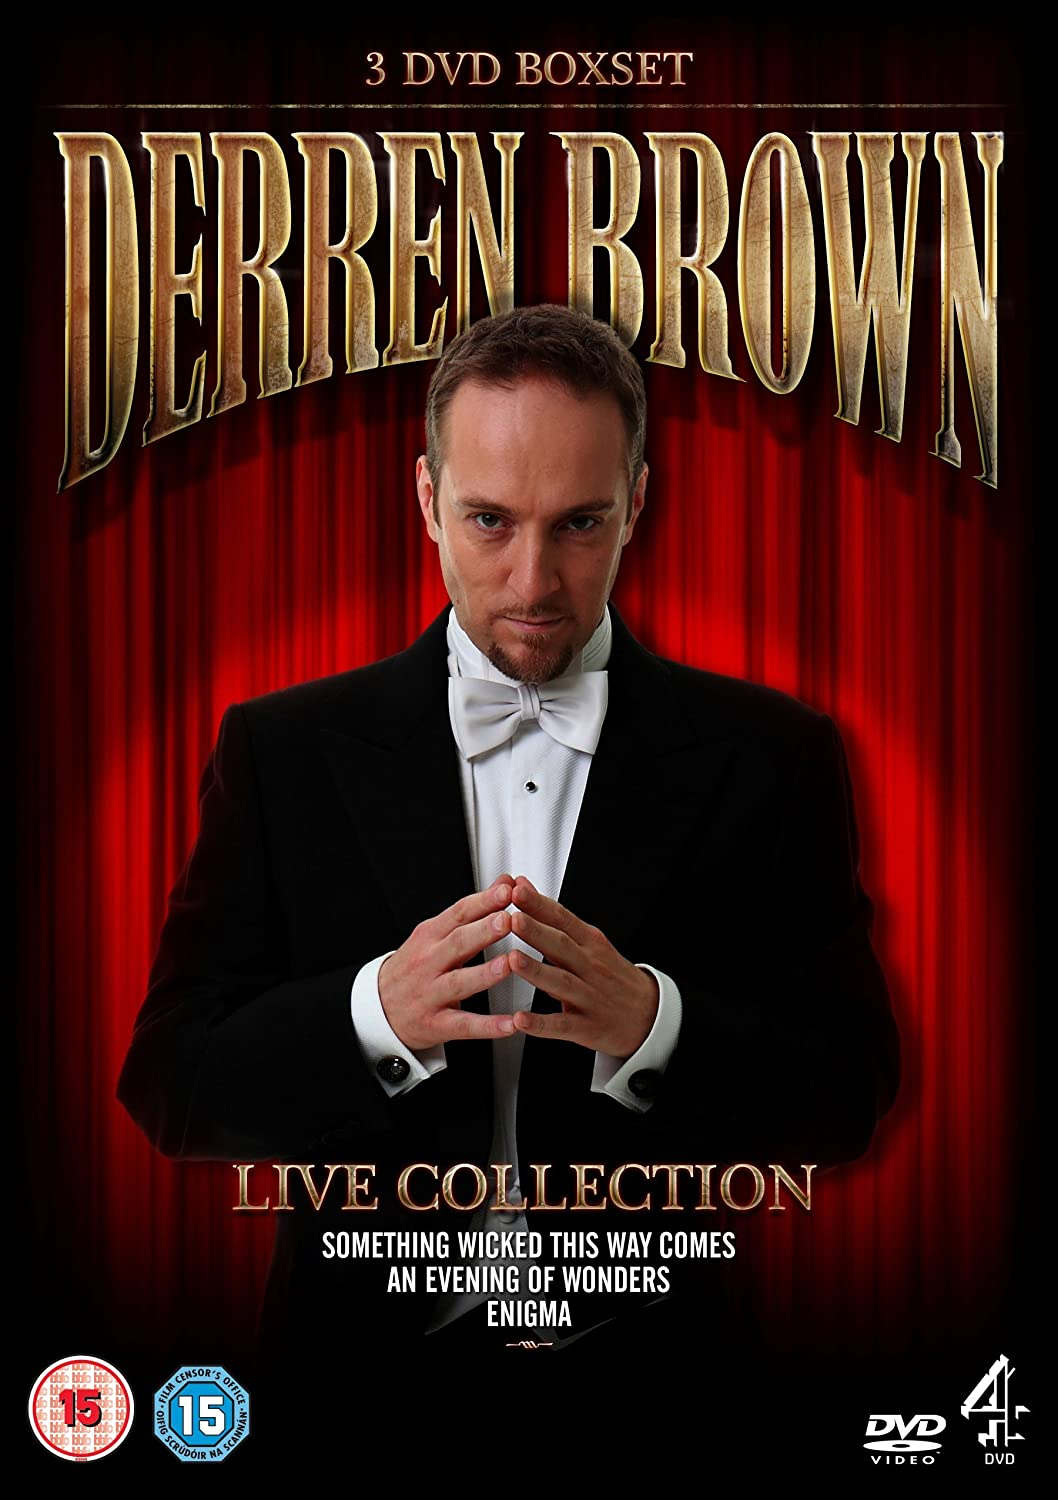 Photo enigma platinum collection full image - Derren Brown Live Collection Dvd Amazon Co Uk Andy Nyman Dvd Blu Ray